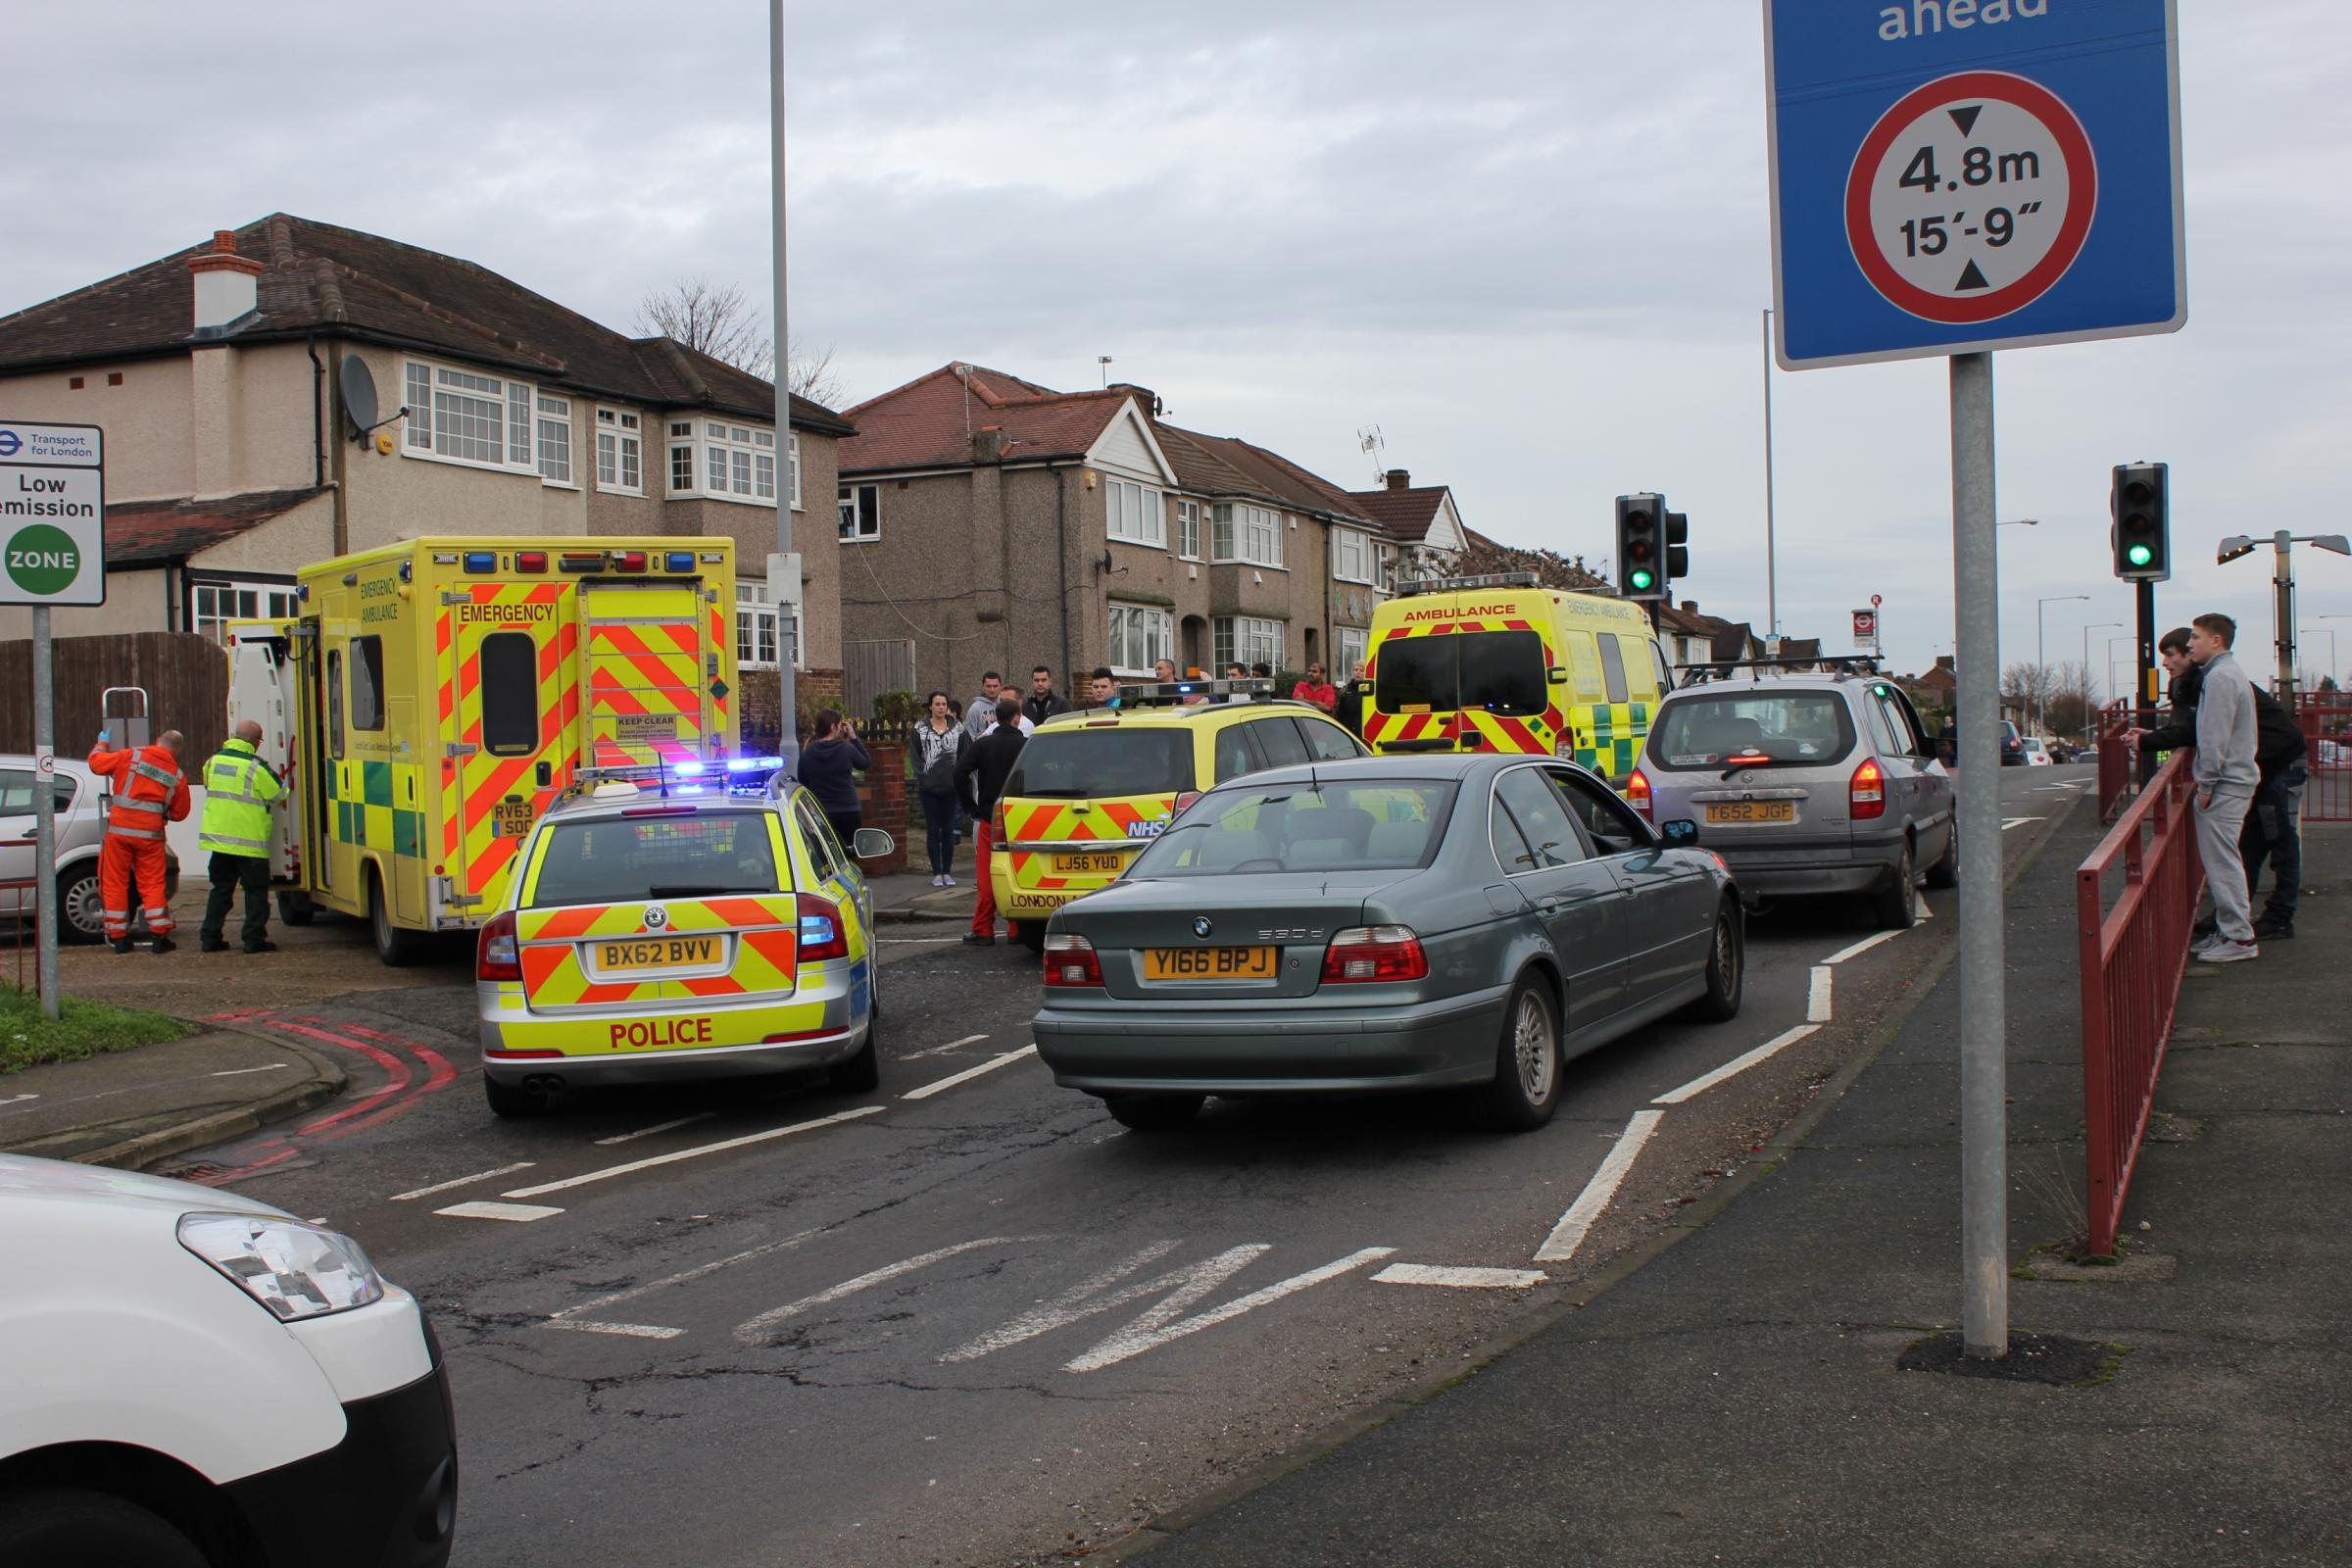 Cyclist death: An 85-year-old man has died after collapsing in Bridge Road. P